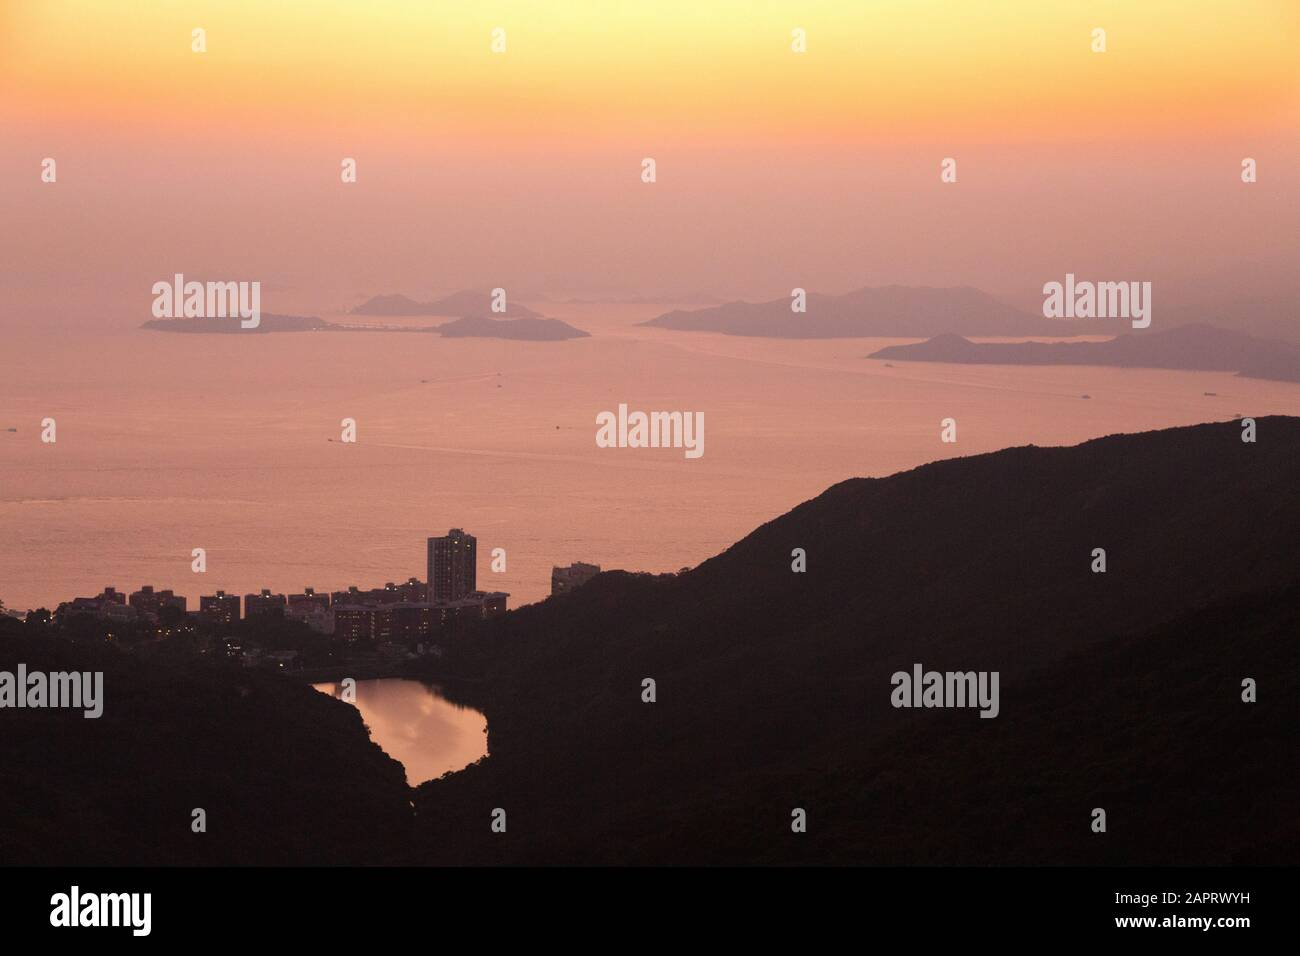 Hong Kong Islands - a view at sunset looking south-west over the islands in the South China Sea seen from the Peak, Hong Kong Island, Hong Kong Asia Stock Photo